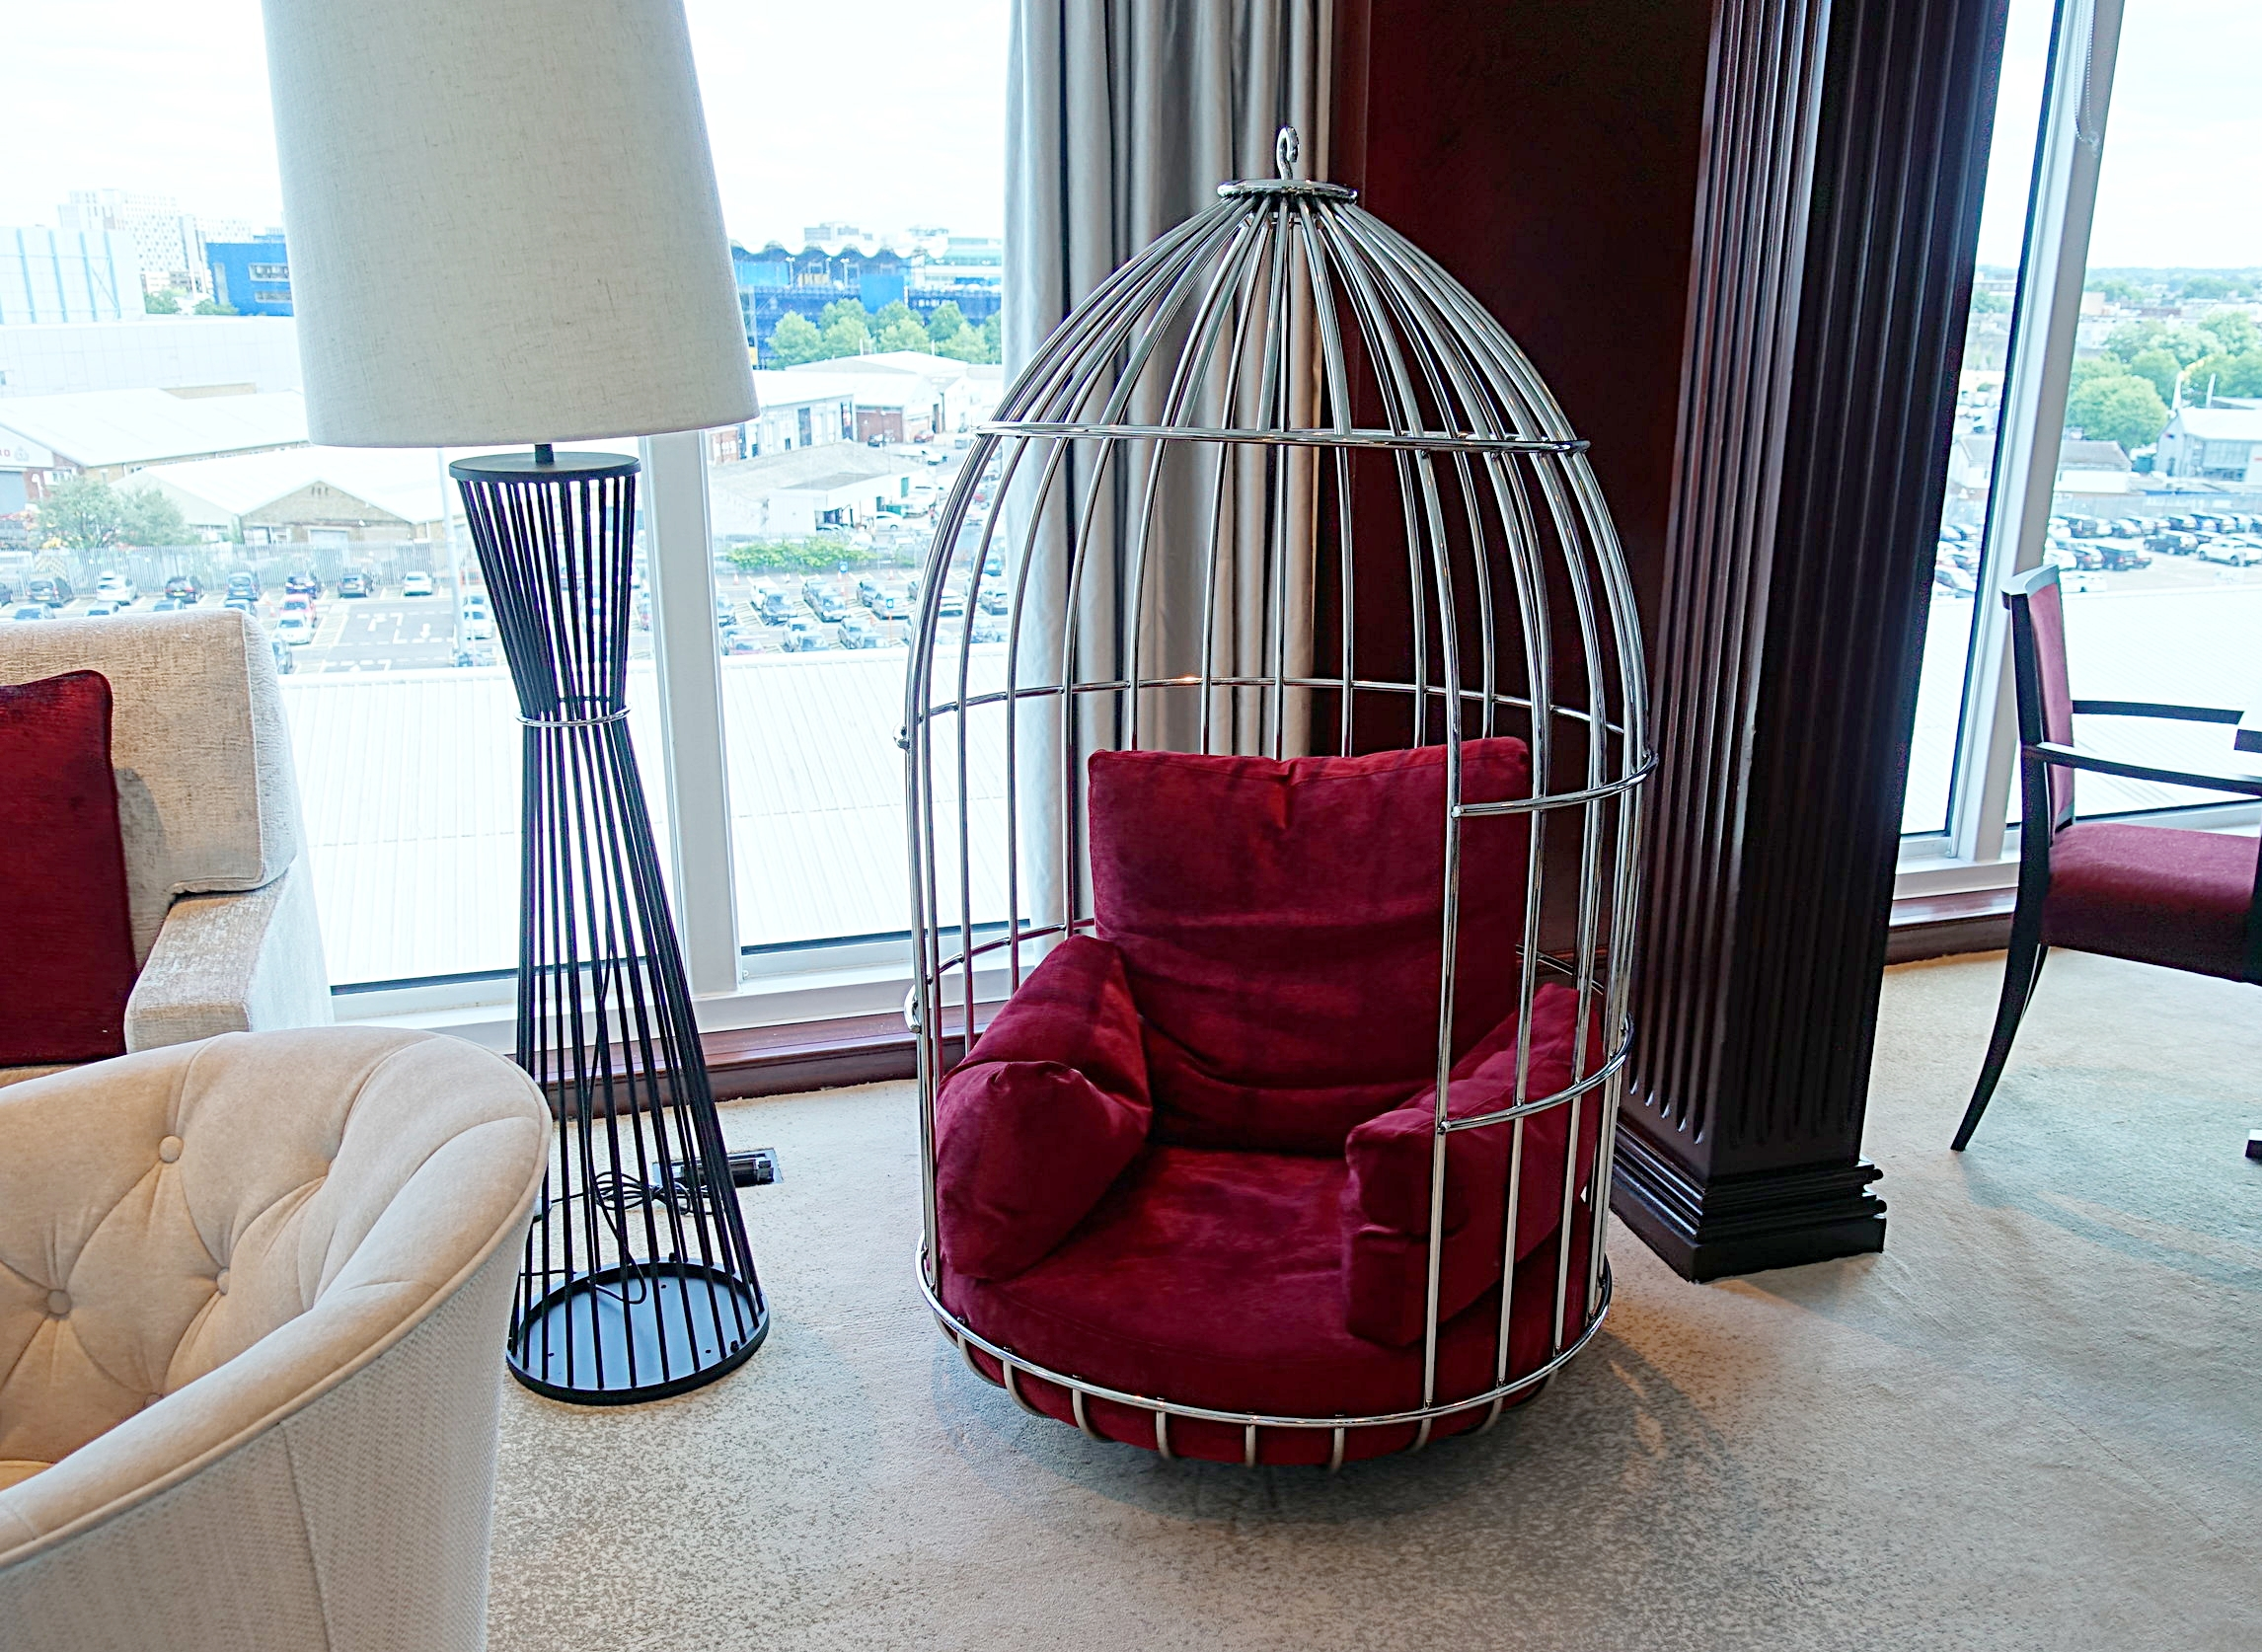 We loved these hanging chairs in the Living Room.